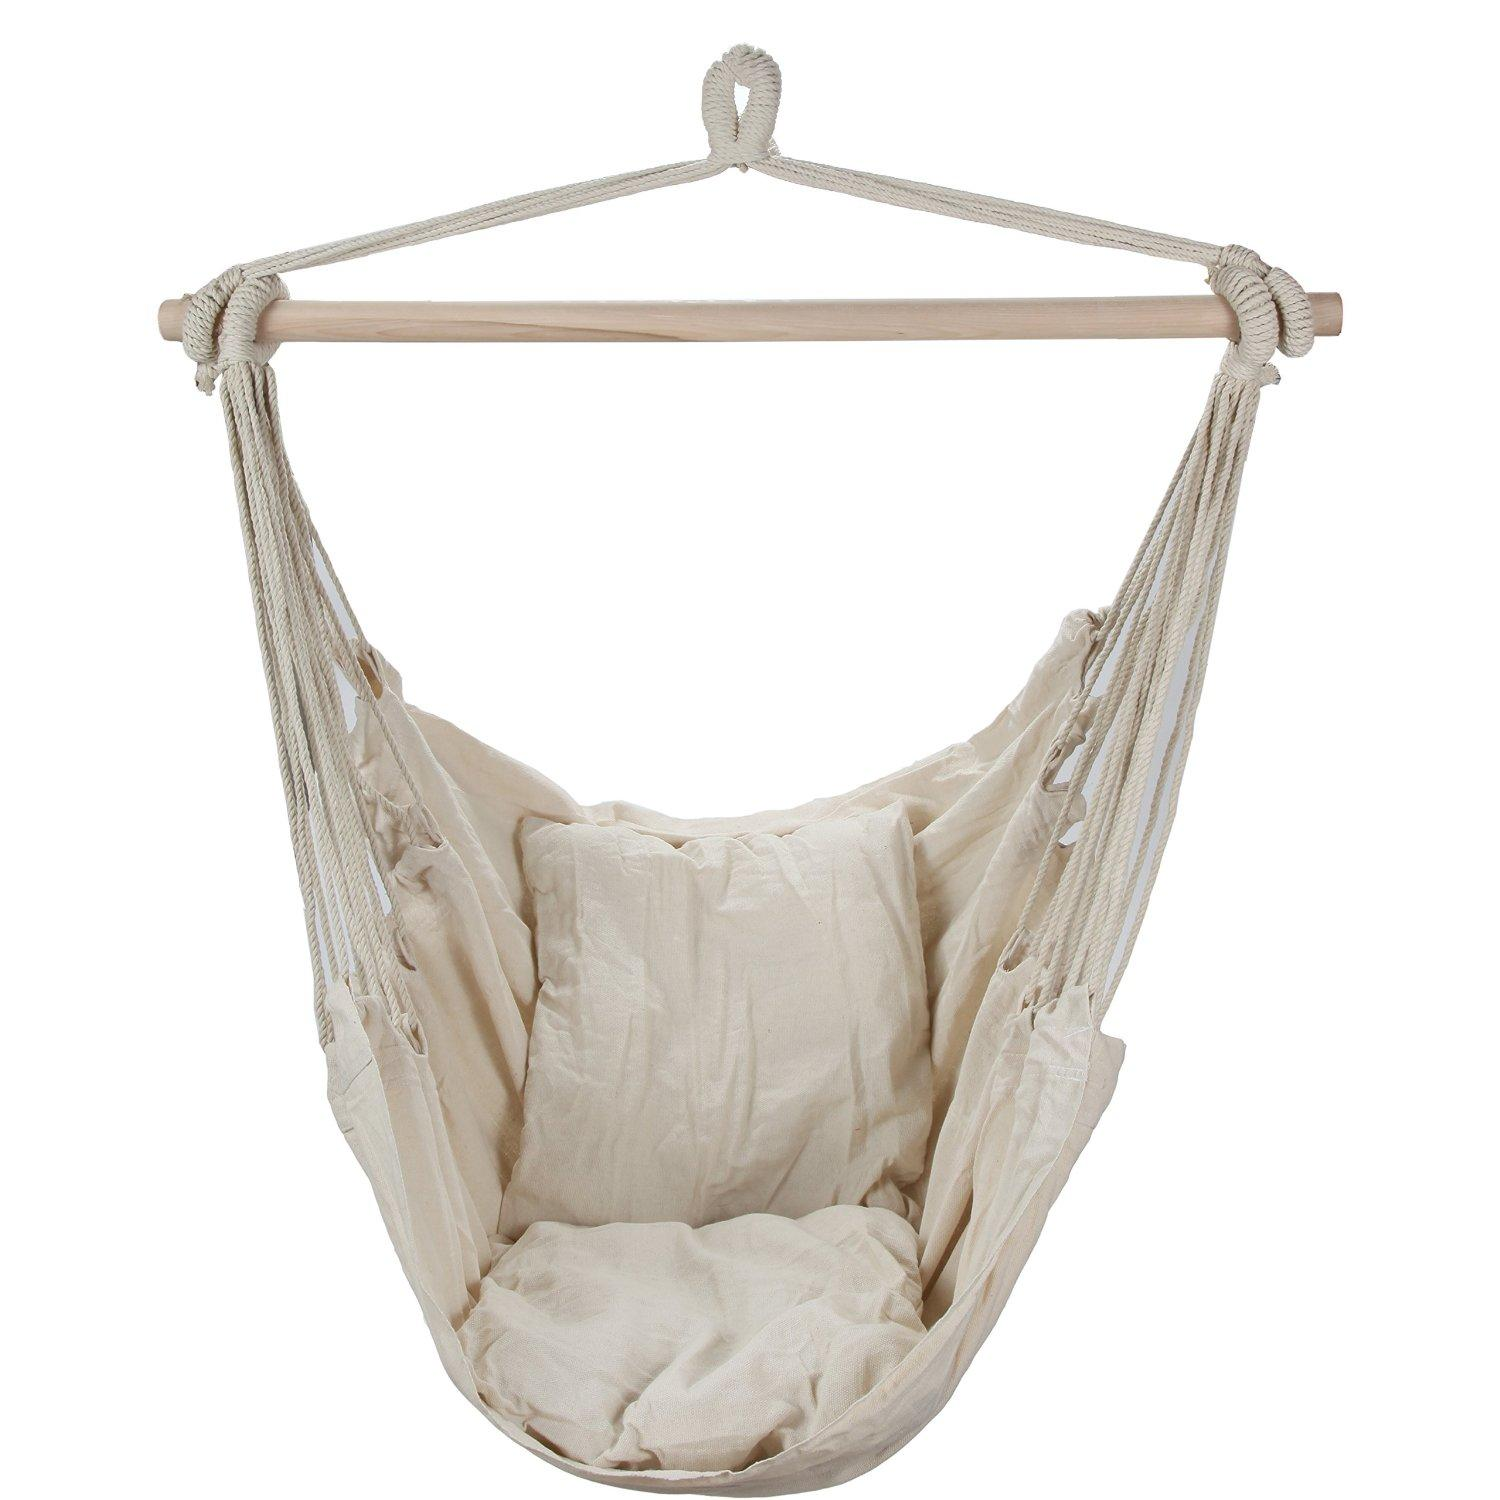 Swing Hanging Hammock Chair With Two From Amazon